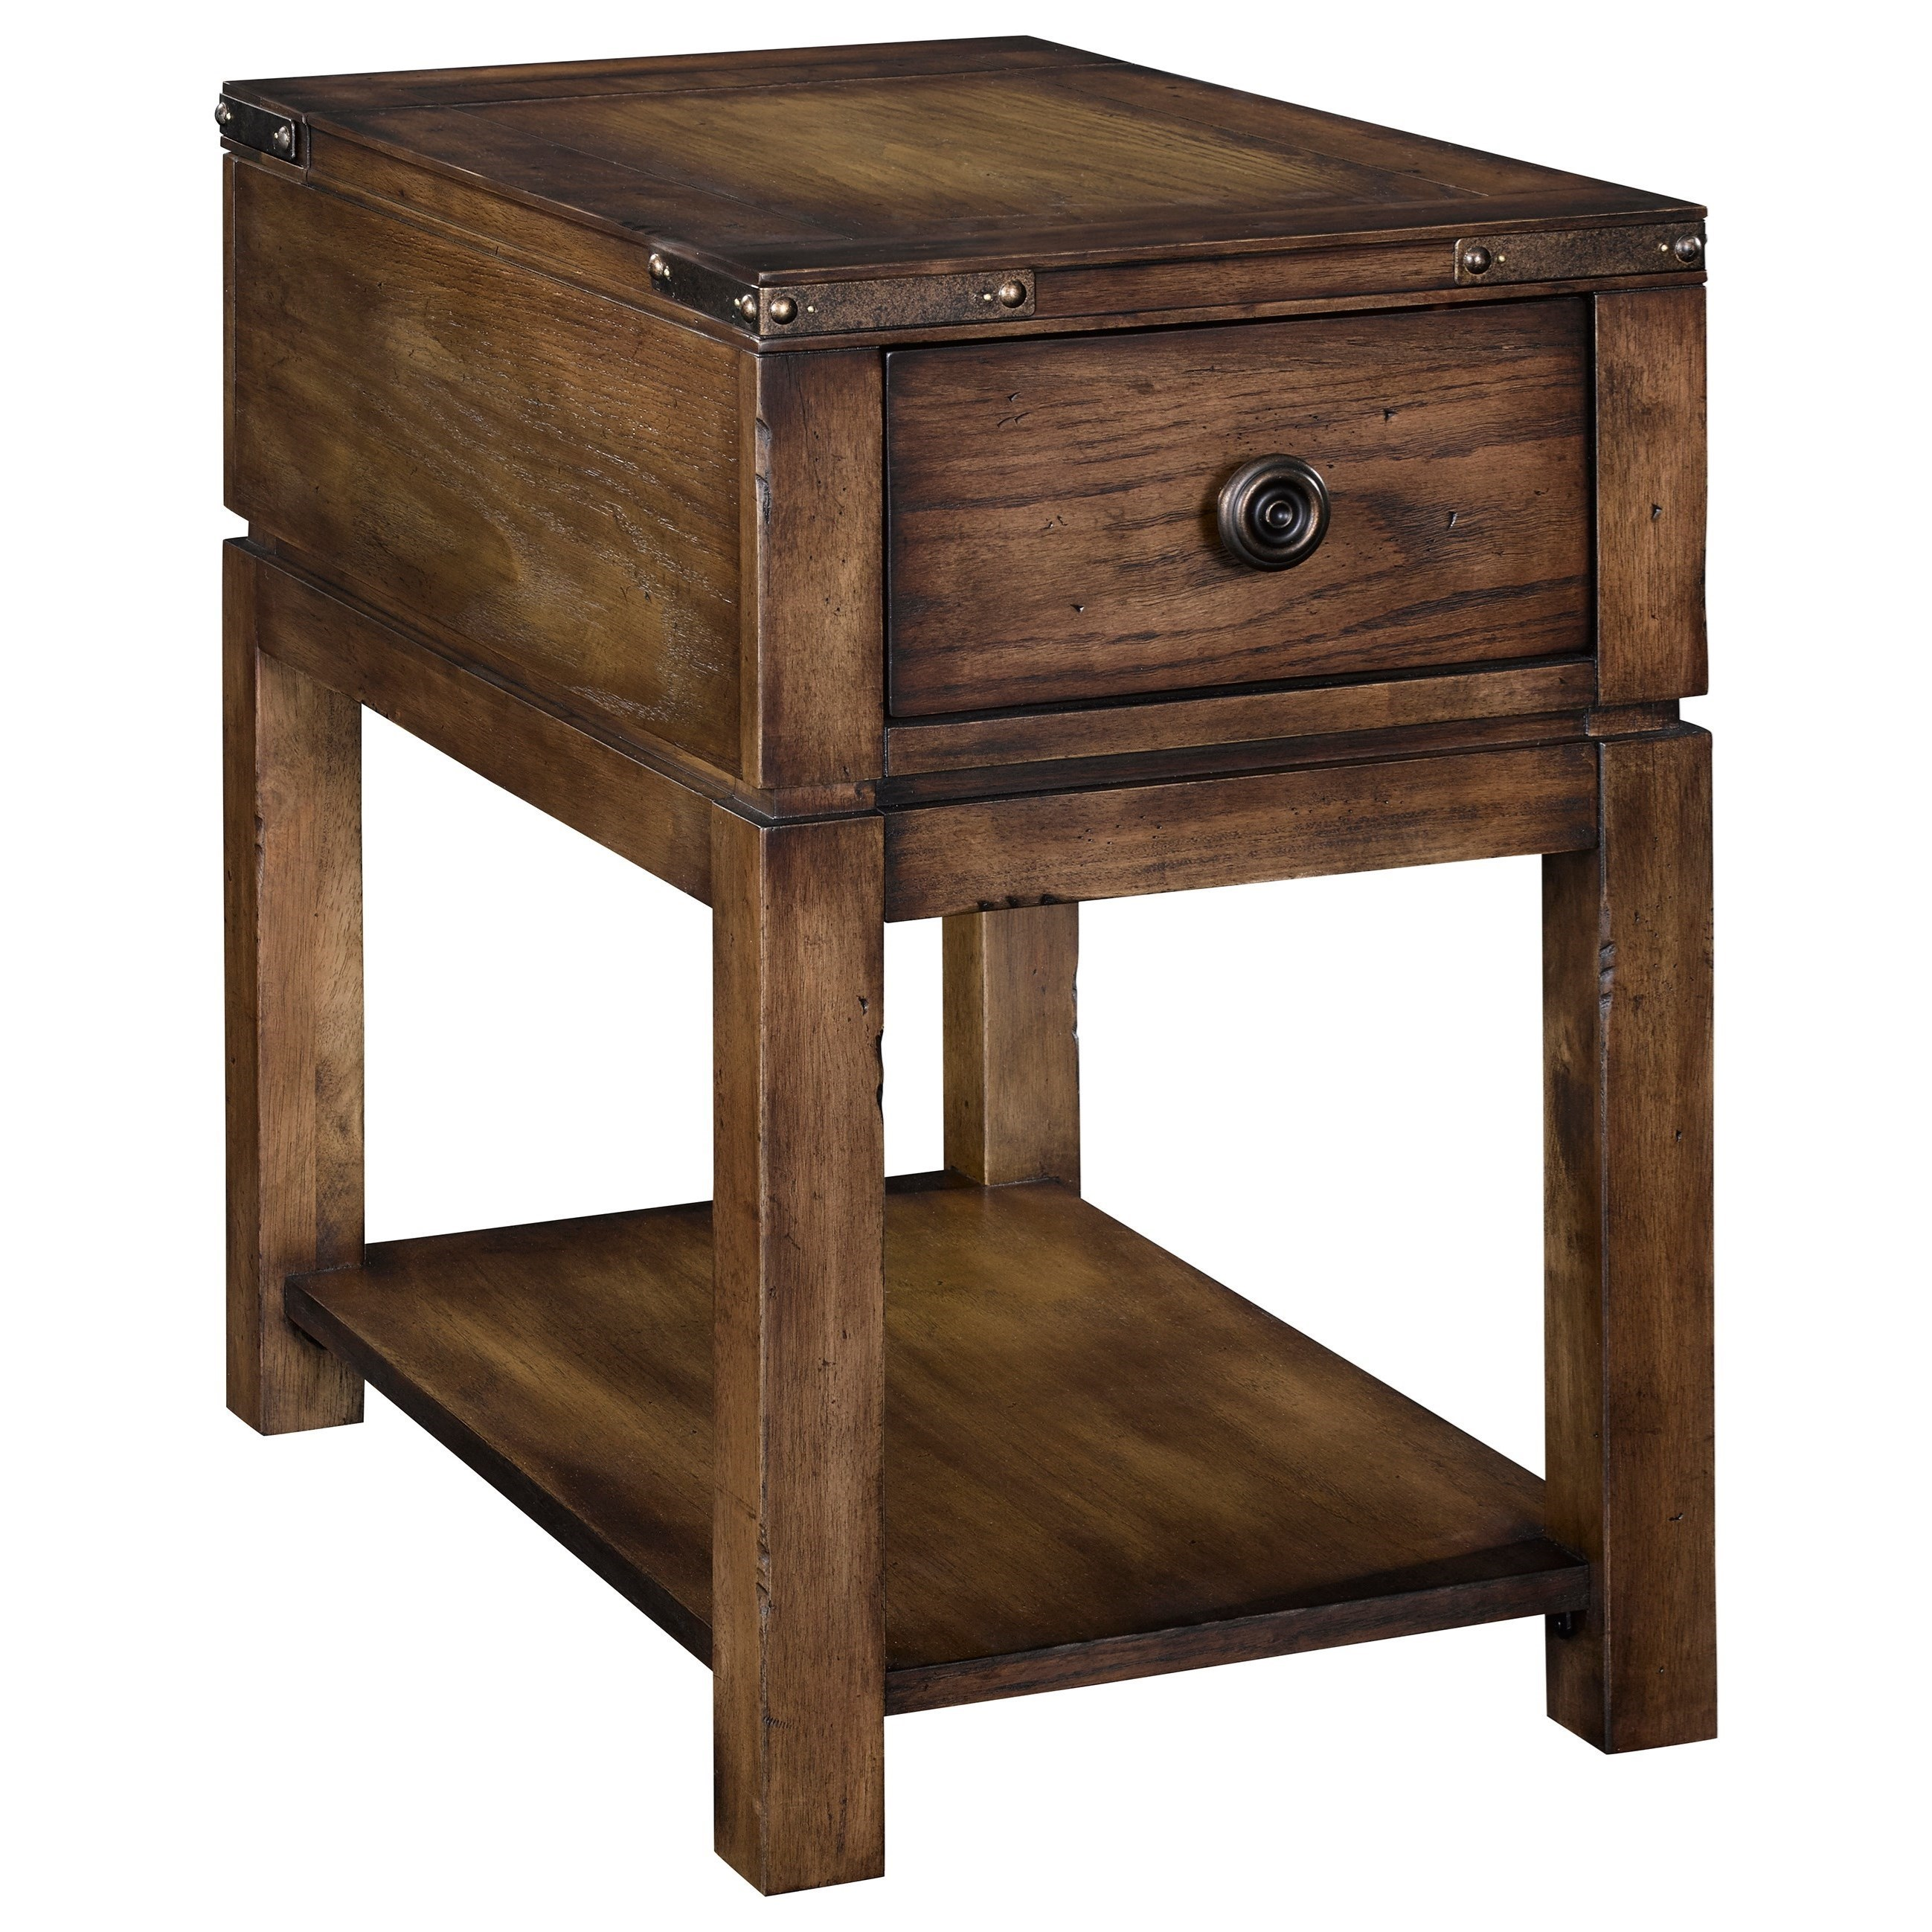 Broyhill Furniture Pike Place 1 Drawer Chairside Table With Power Strip/USB  Charger   John V Schultz Furniture   End Tables